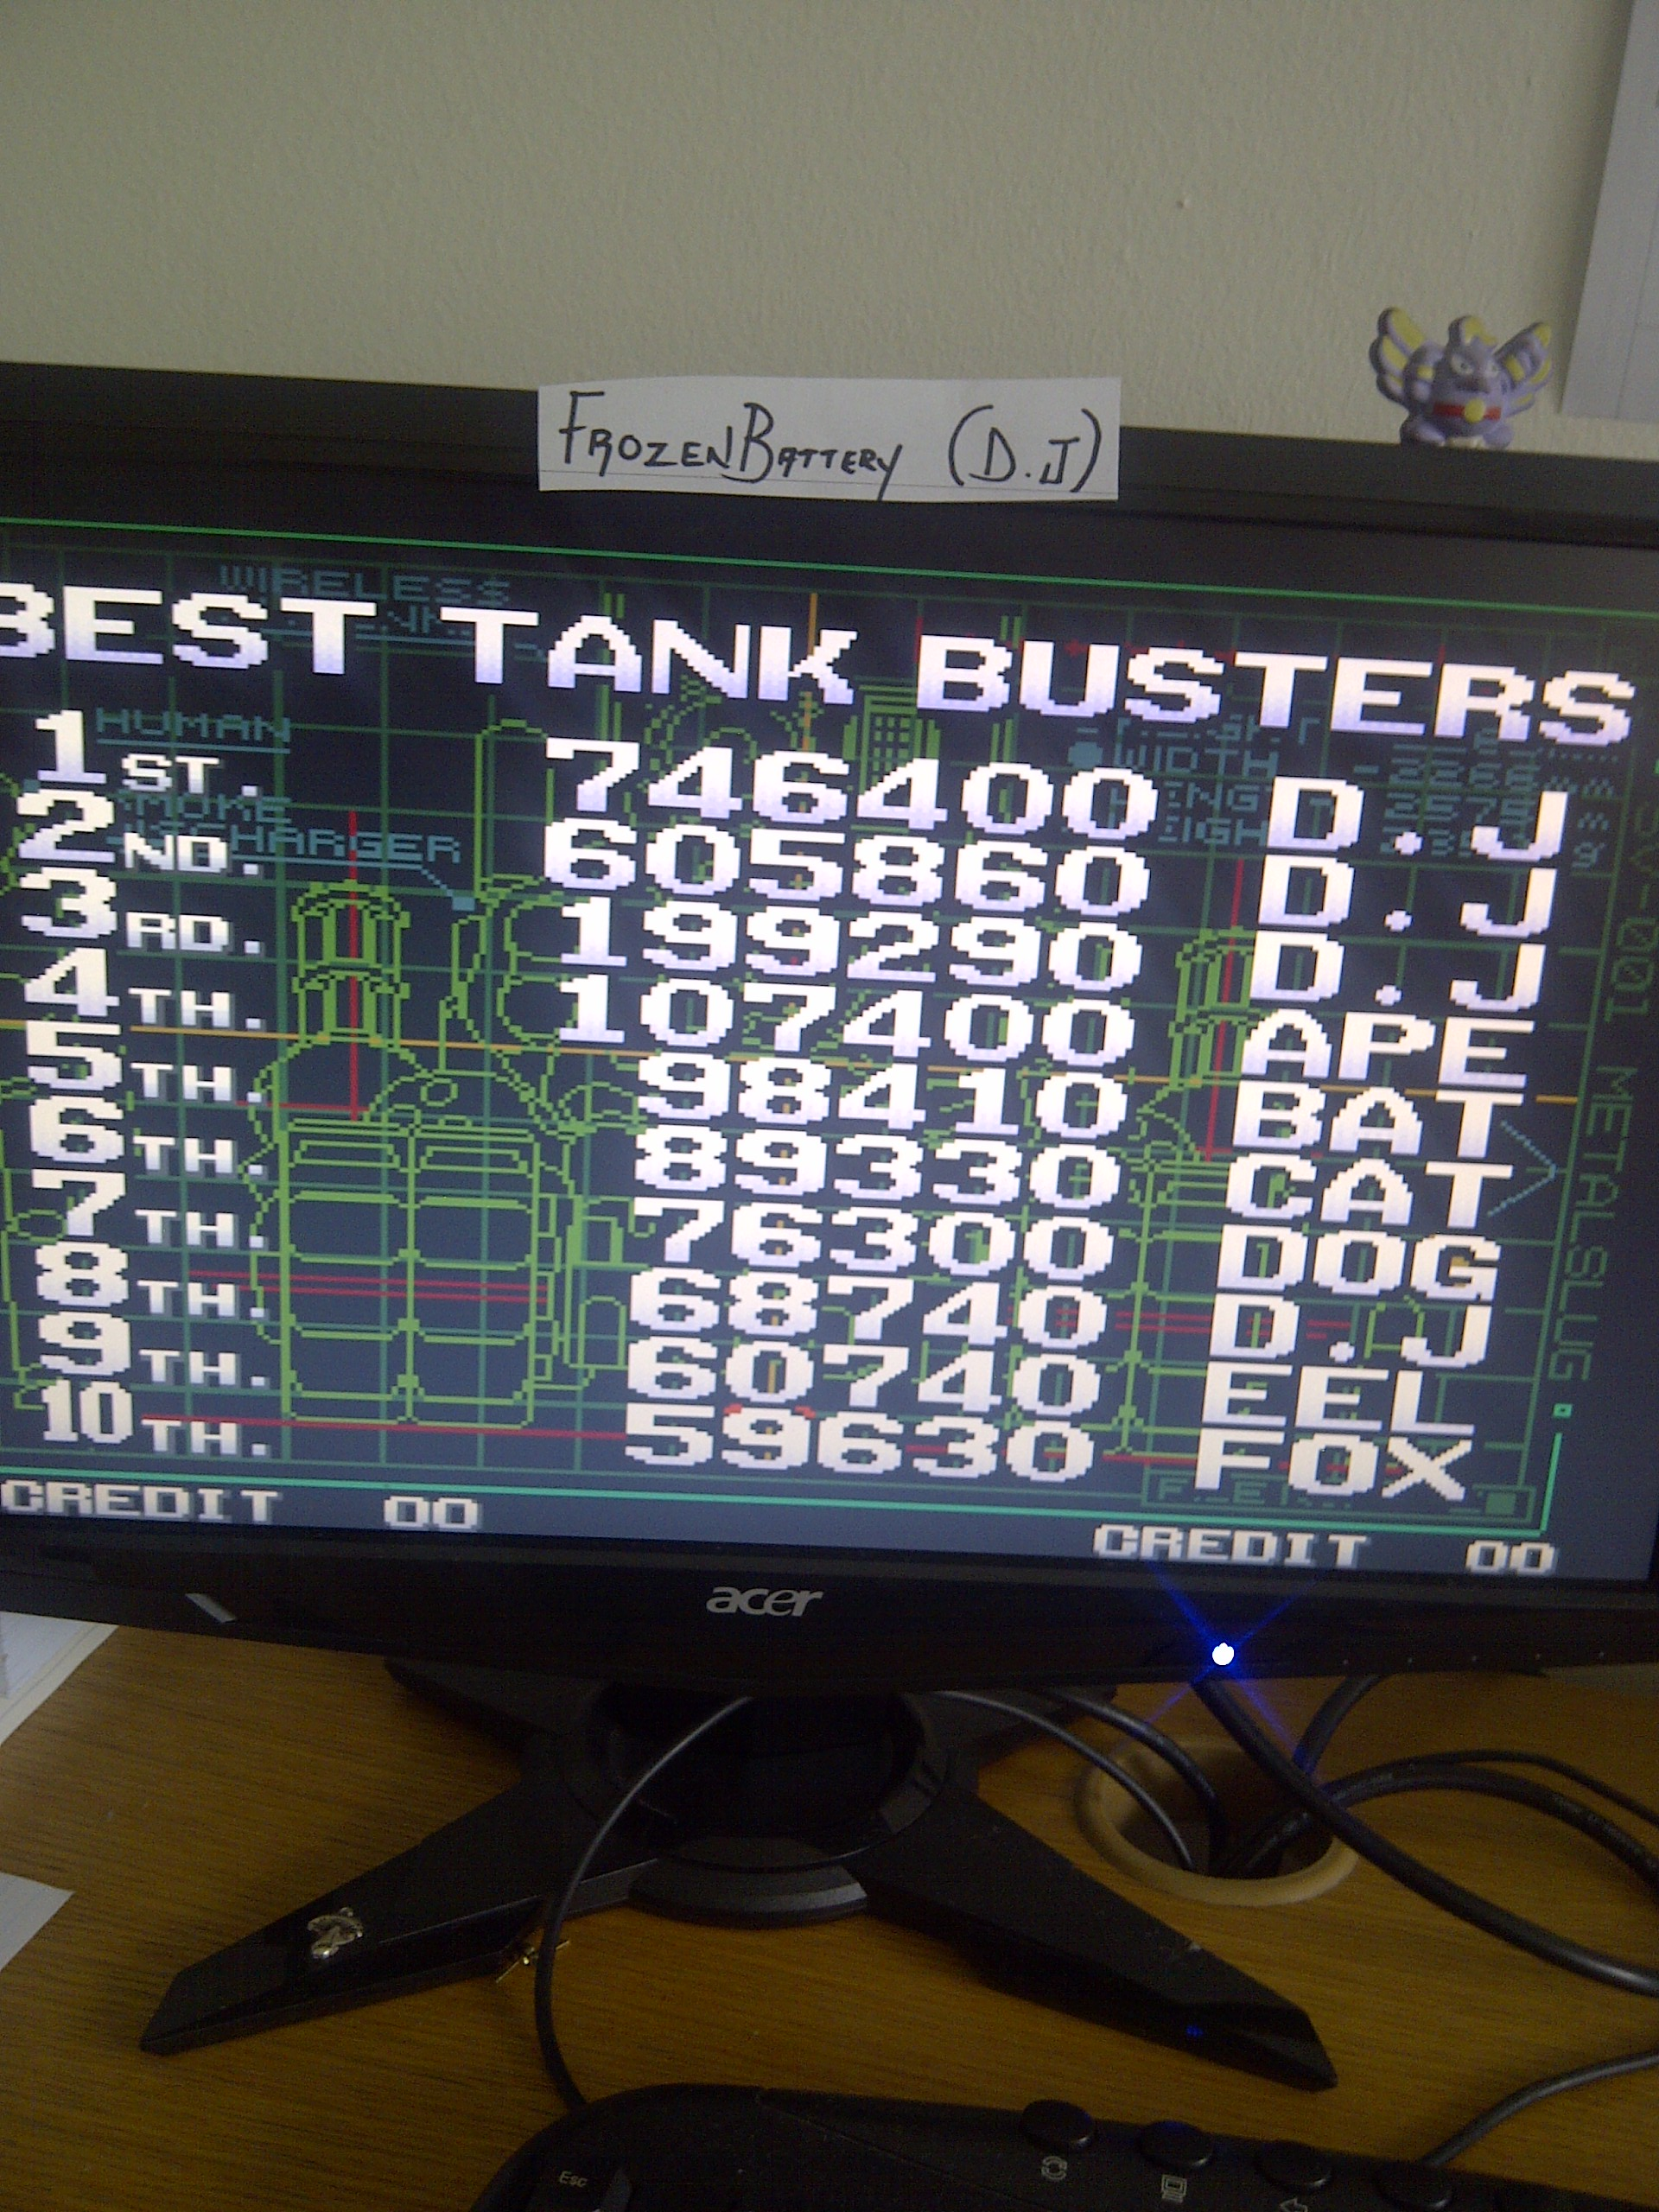 Metal Slug 3 746,400 points